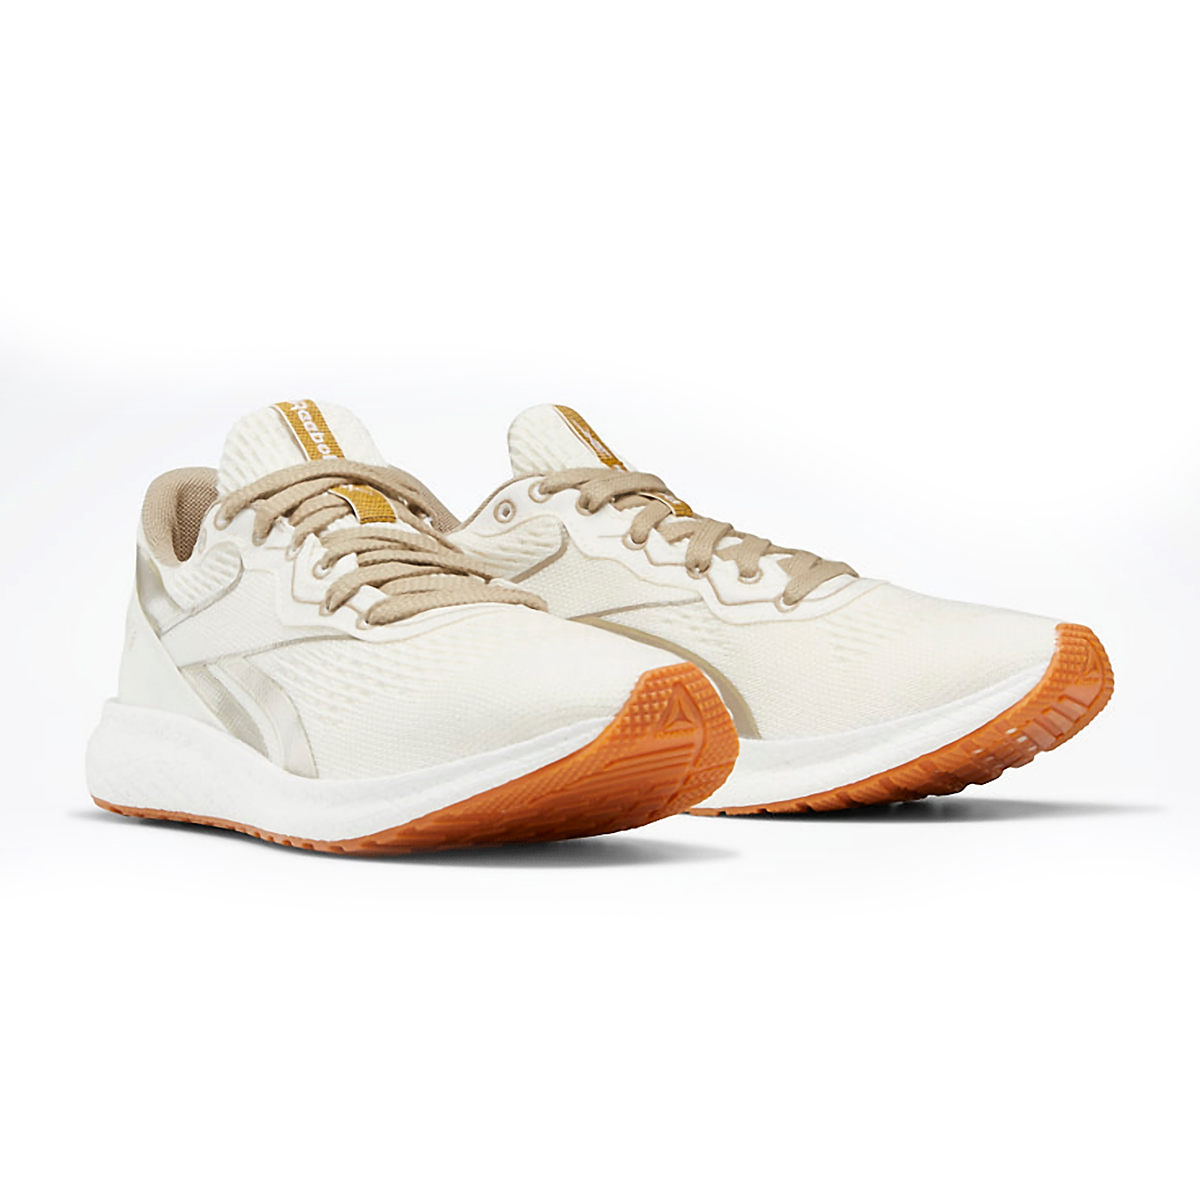 Women's Reebok Forever Floatride Grow Running Shoe - Color: Classic White/Straw/Super Neutral - Size: 5 - Width: Regular, Classic White/Straw/Super Neutral, large, image 3